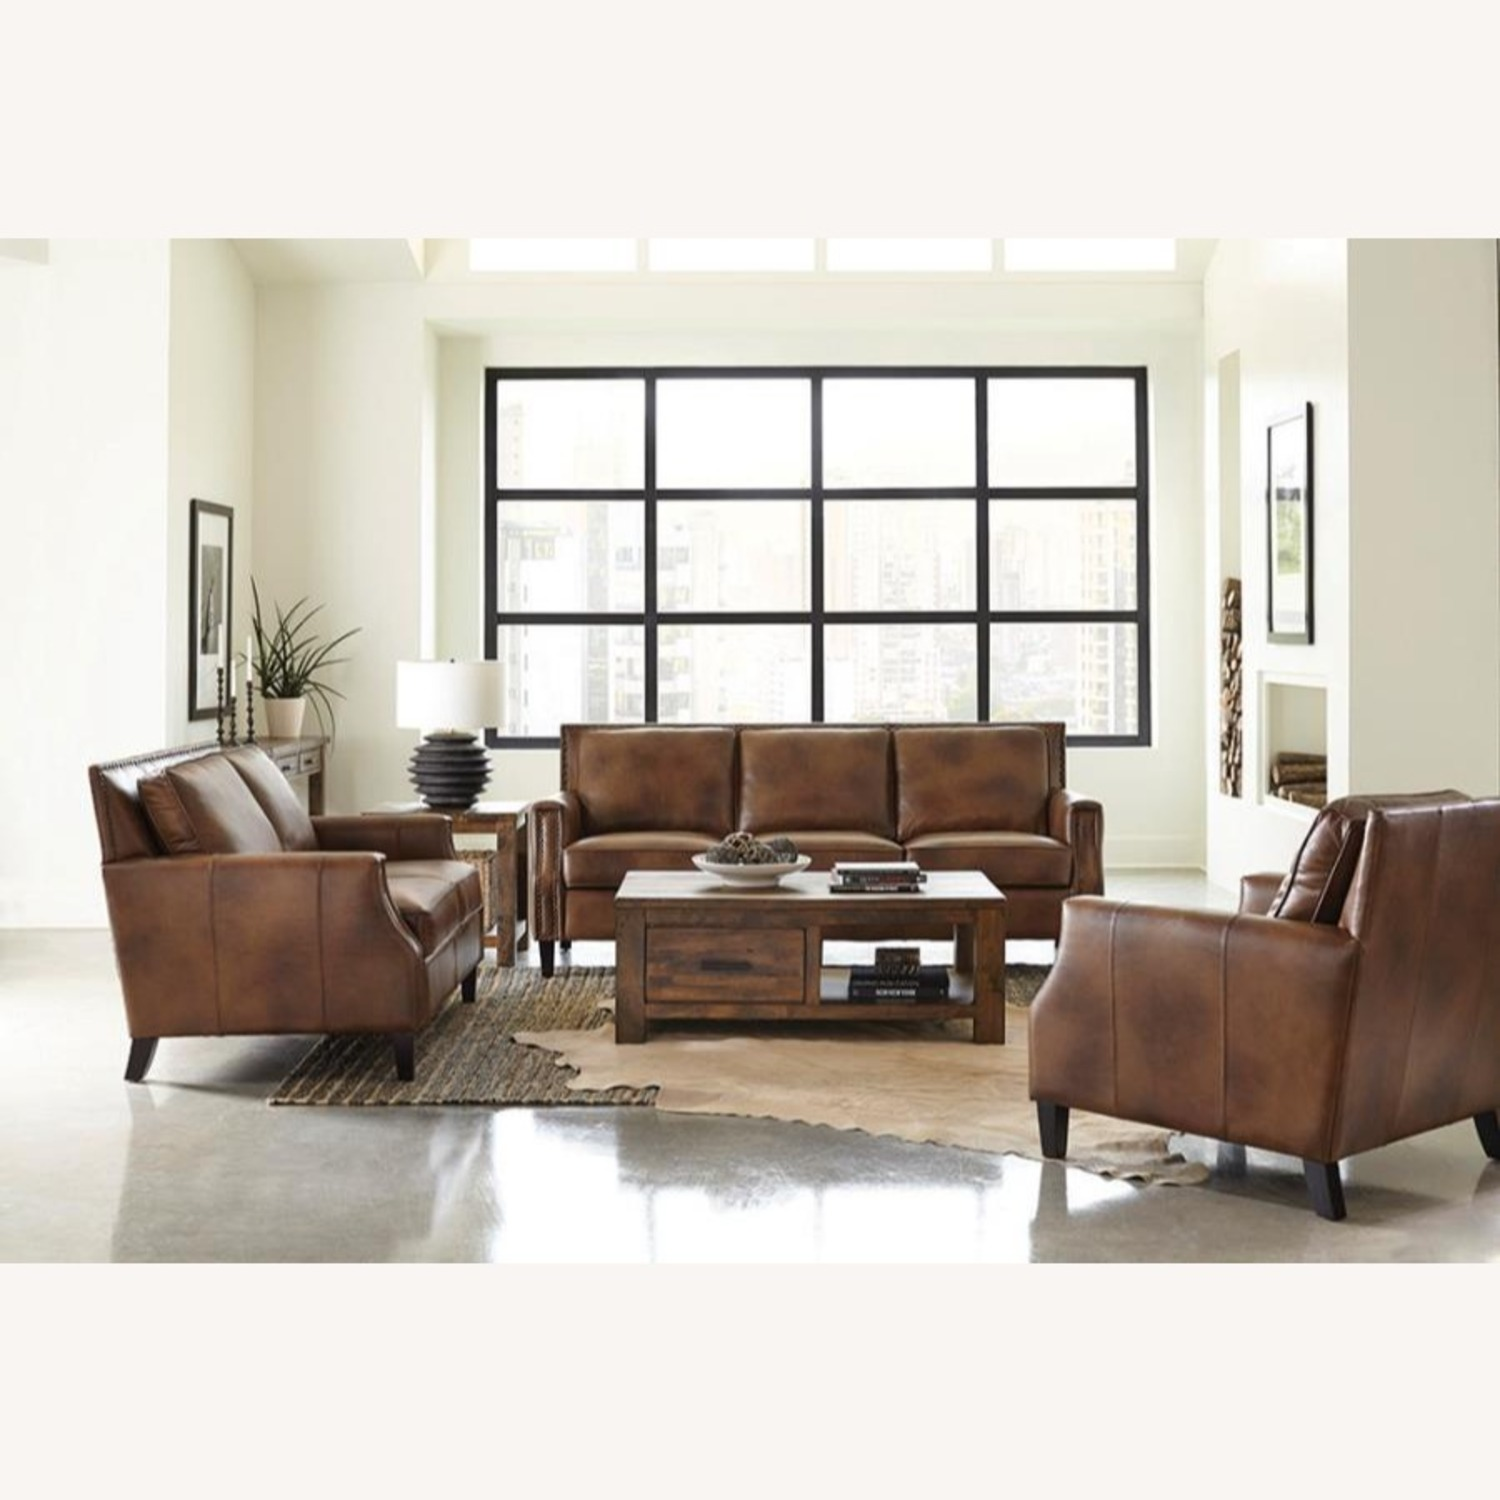 Sofa In Brown Sugar Leather Upholstery - image-1